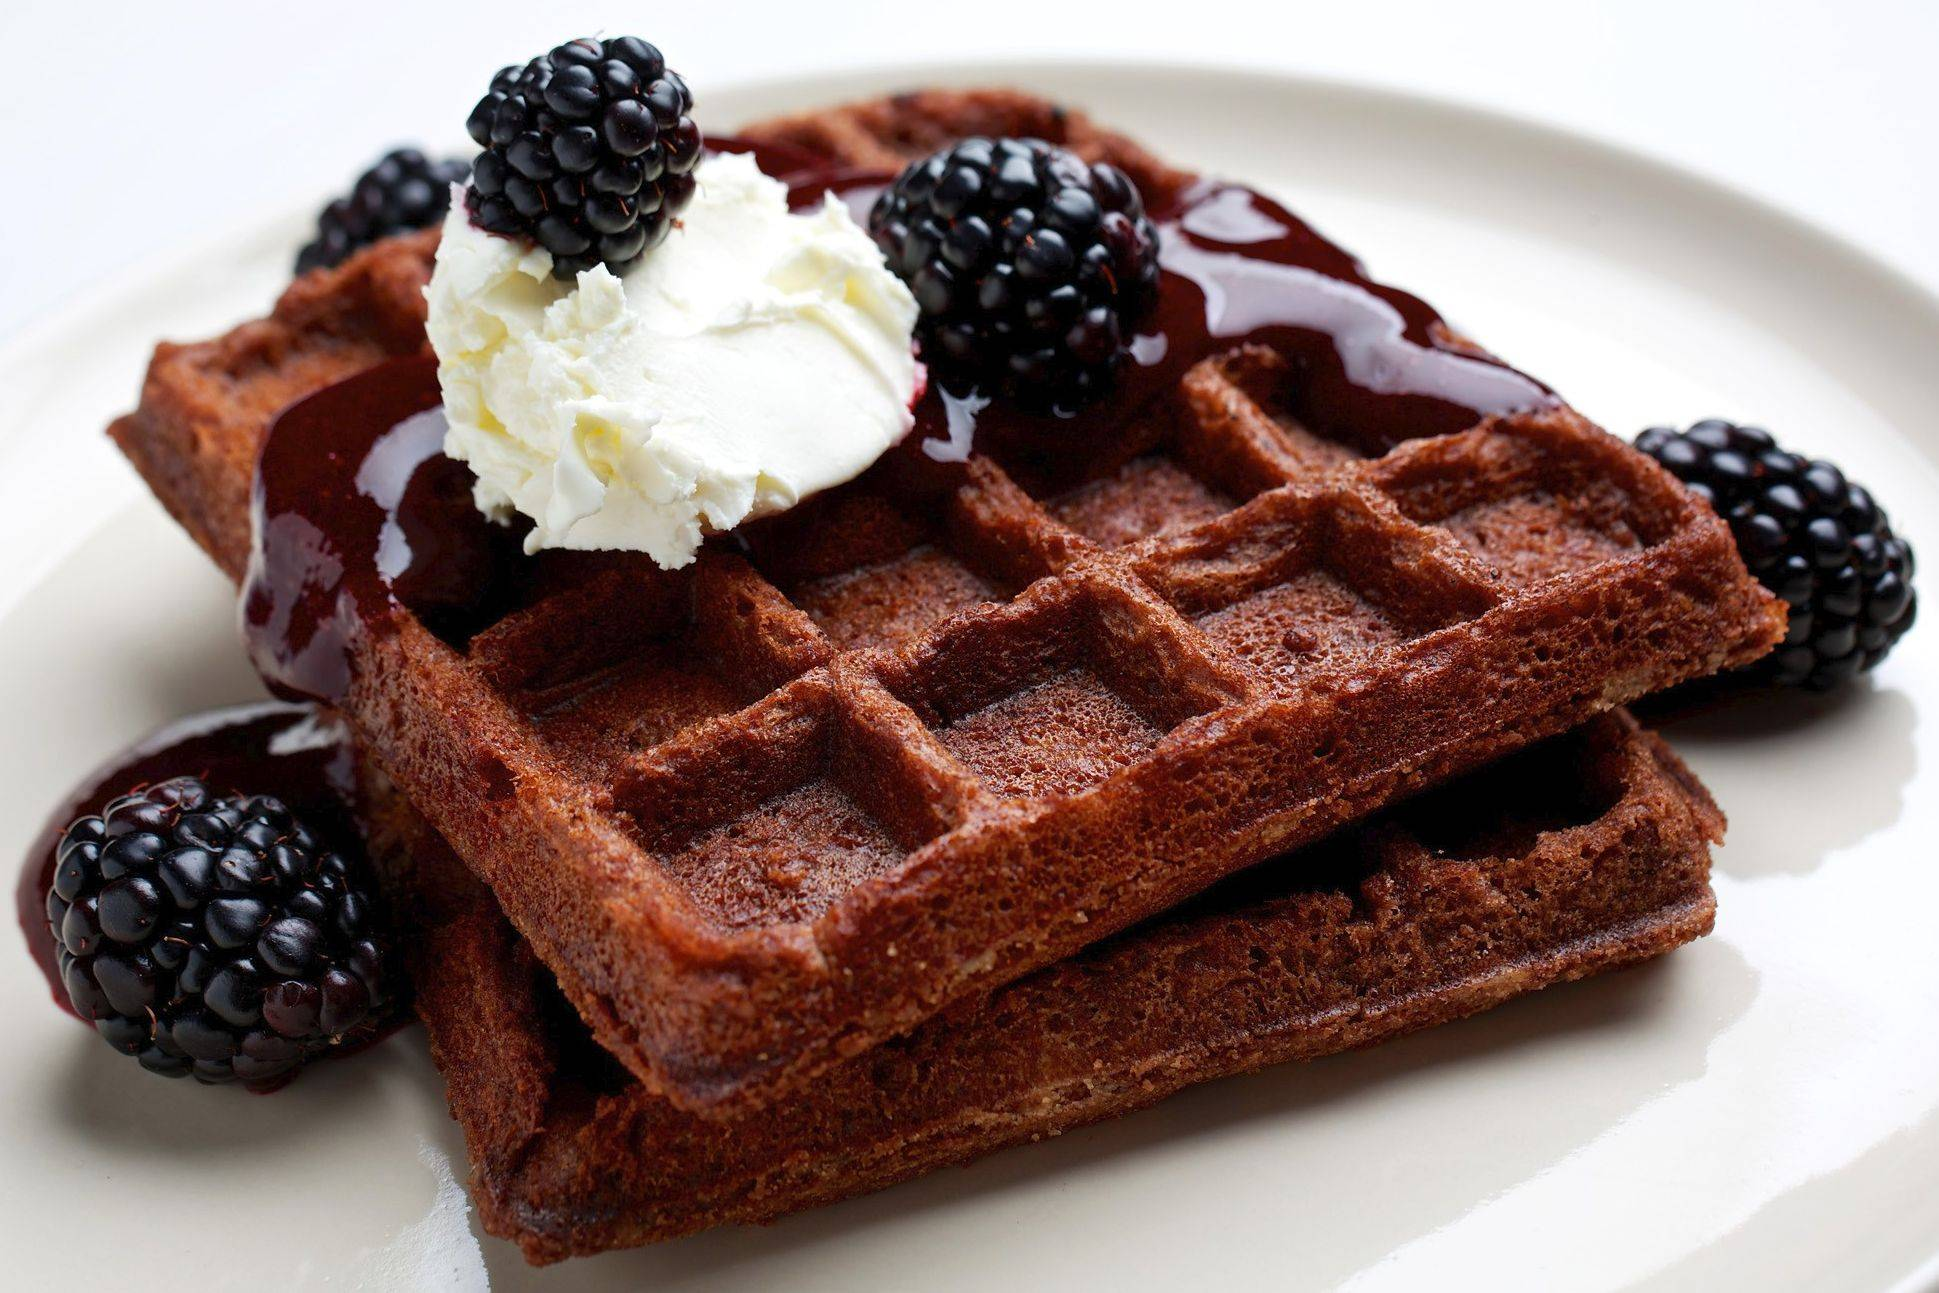 These fragrant Chocolate Brownie Waffles With Blackberry Sauce come together quickly.